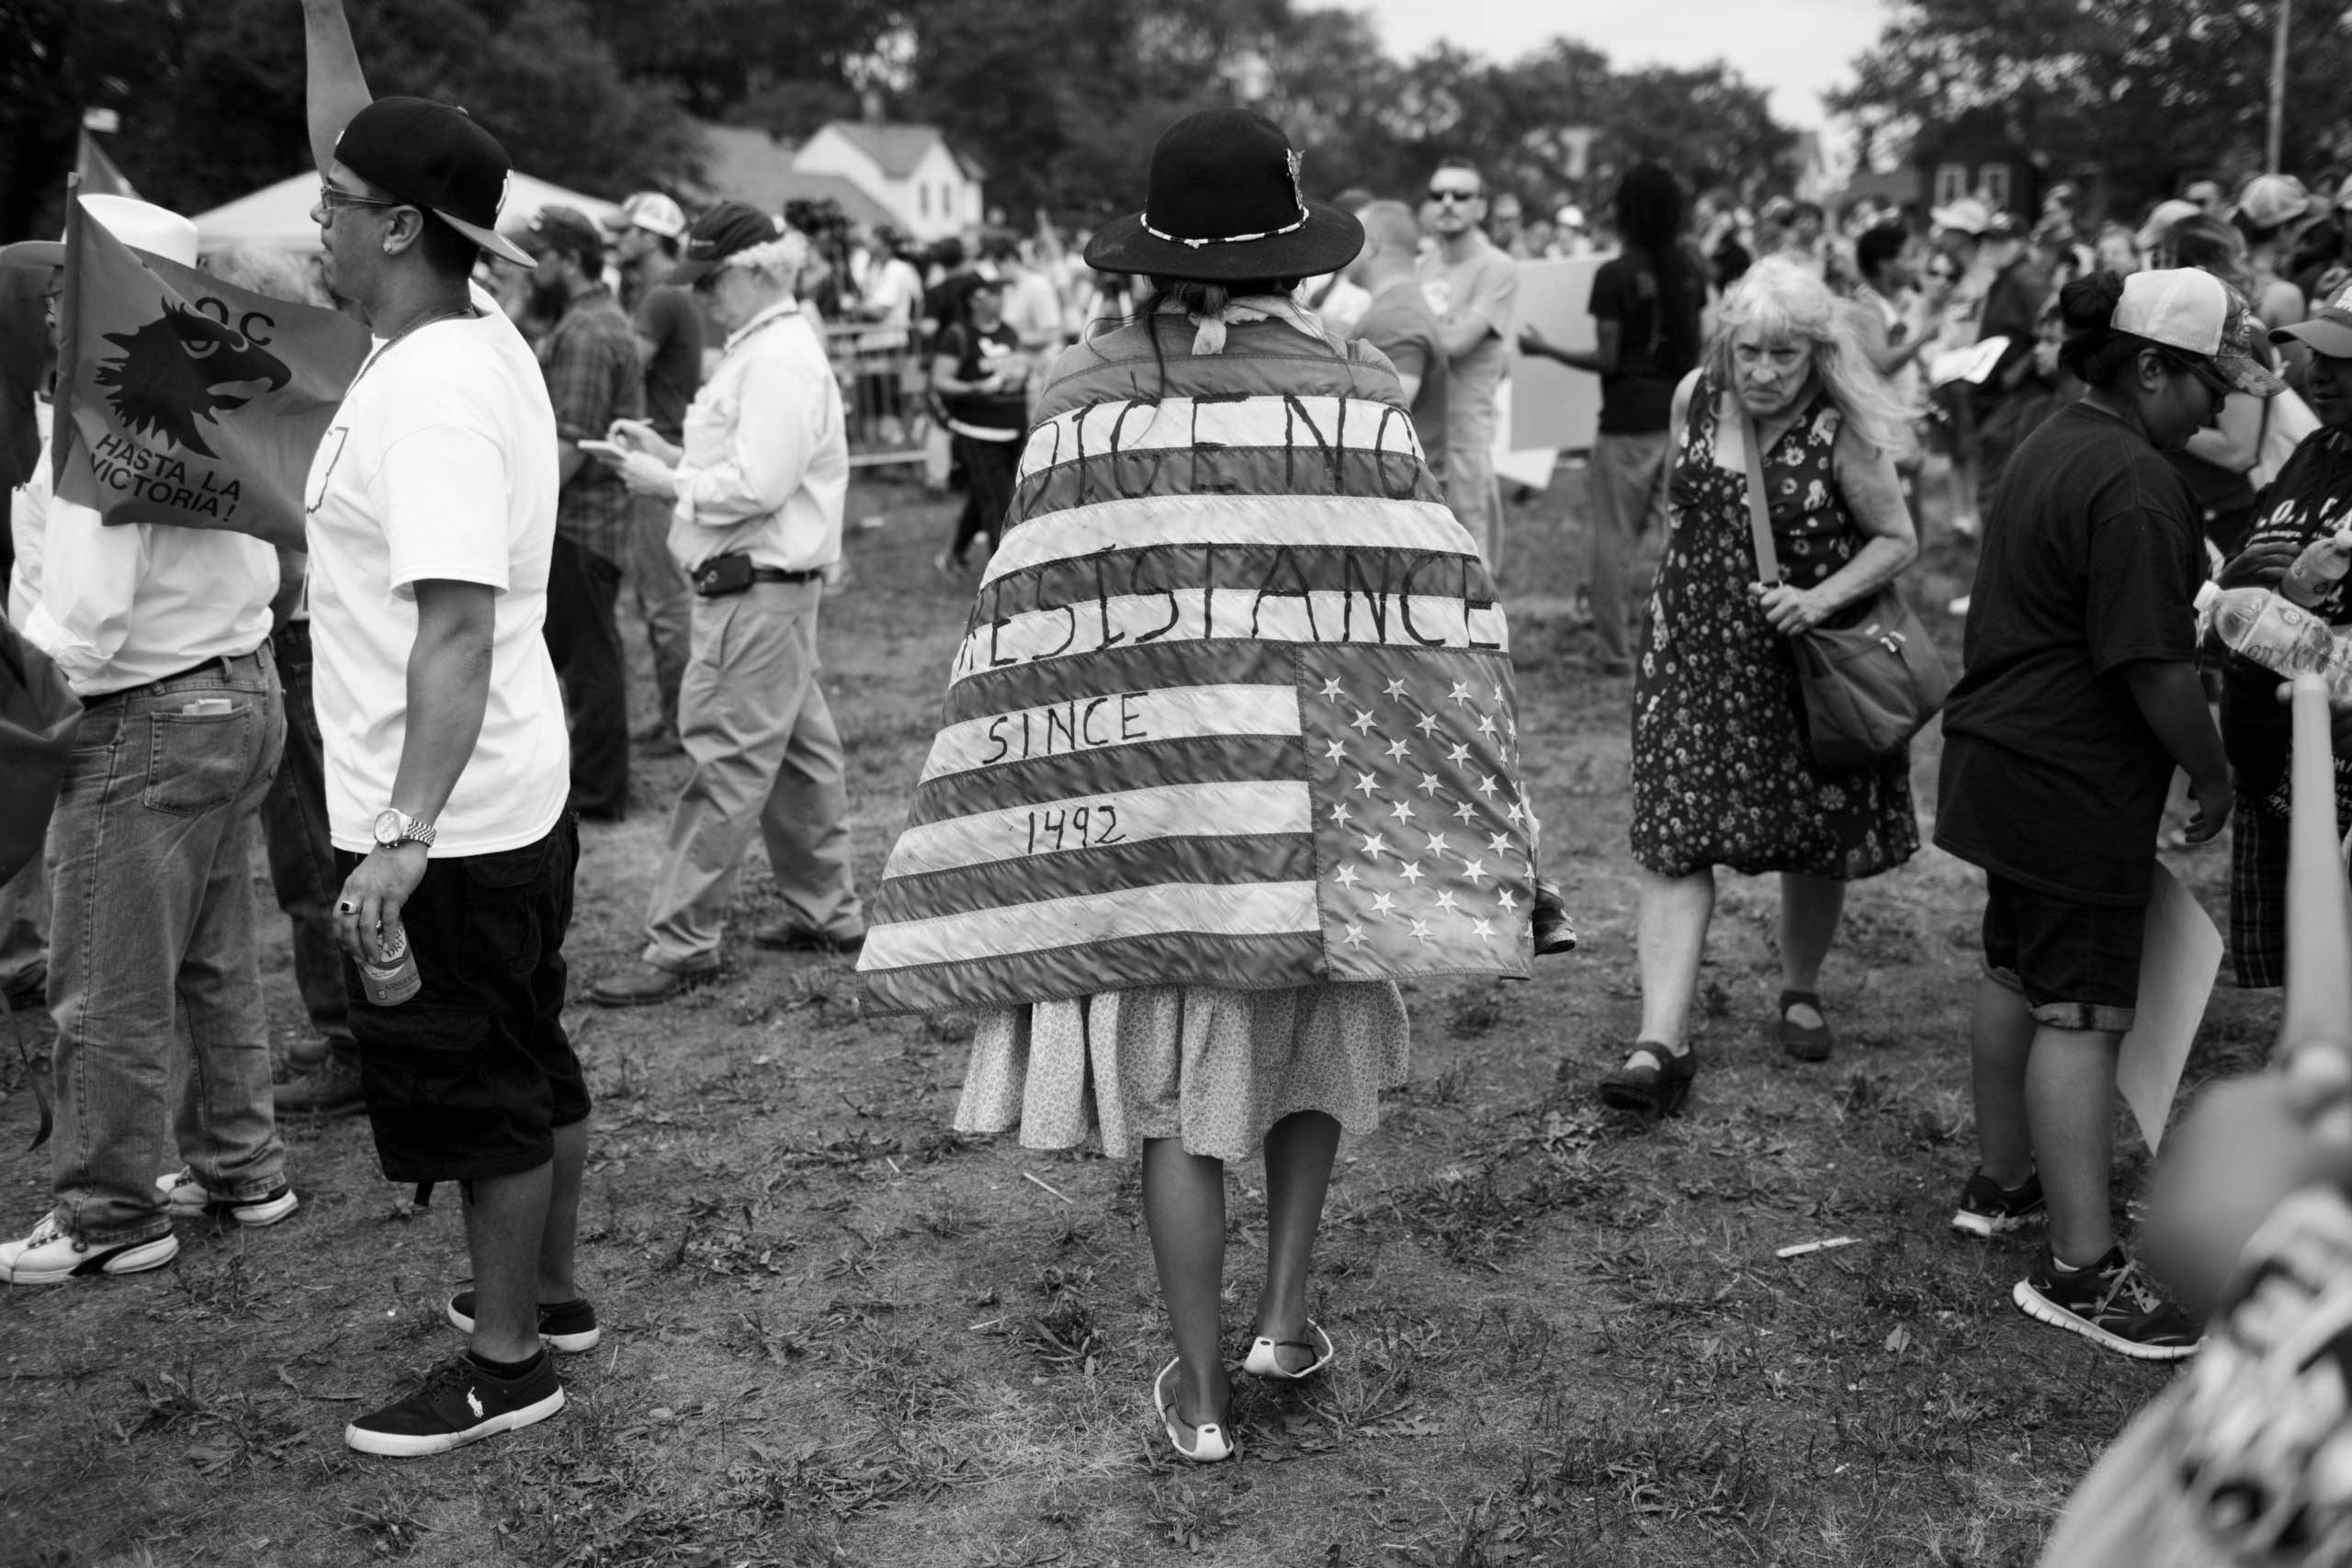 July 18, 2016 - Cleveland, Ohio: Kim Smith, a Native American woman from Dine Nation, AZ, is walking through a crowd at the  End Poverty  rally on the first day of the Republican National Convention in East Cleveland.